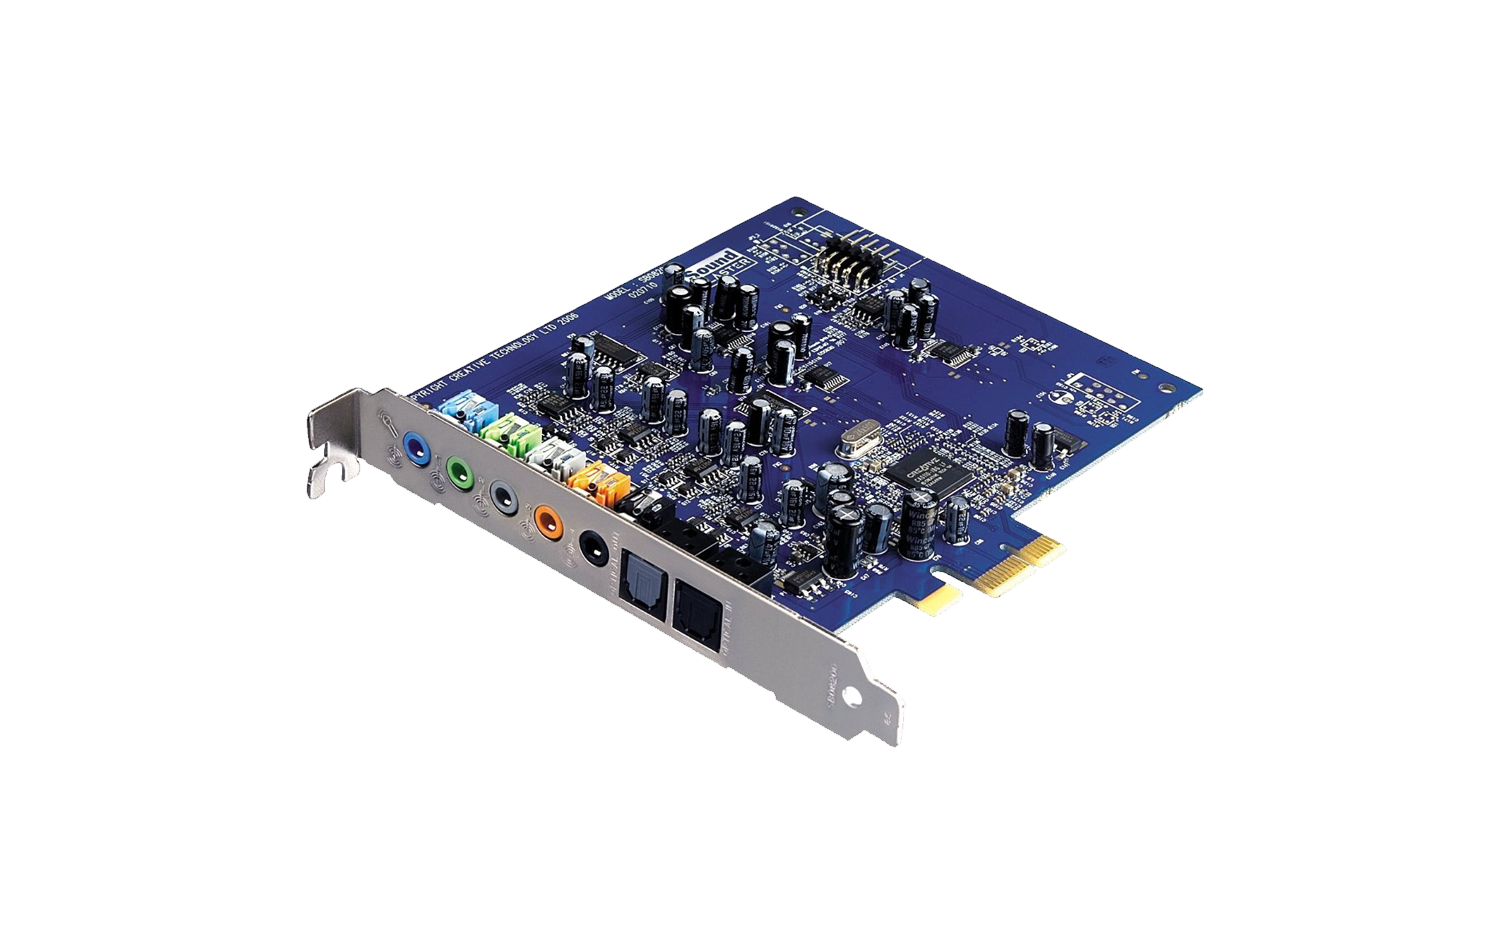 CREATIVE PCI EXPRESS X-FI XTRAEME AUDIO